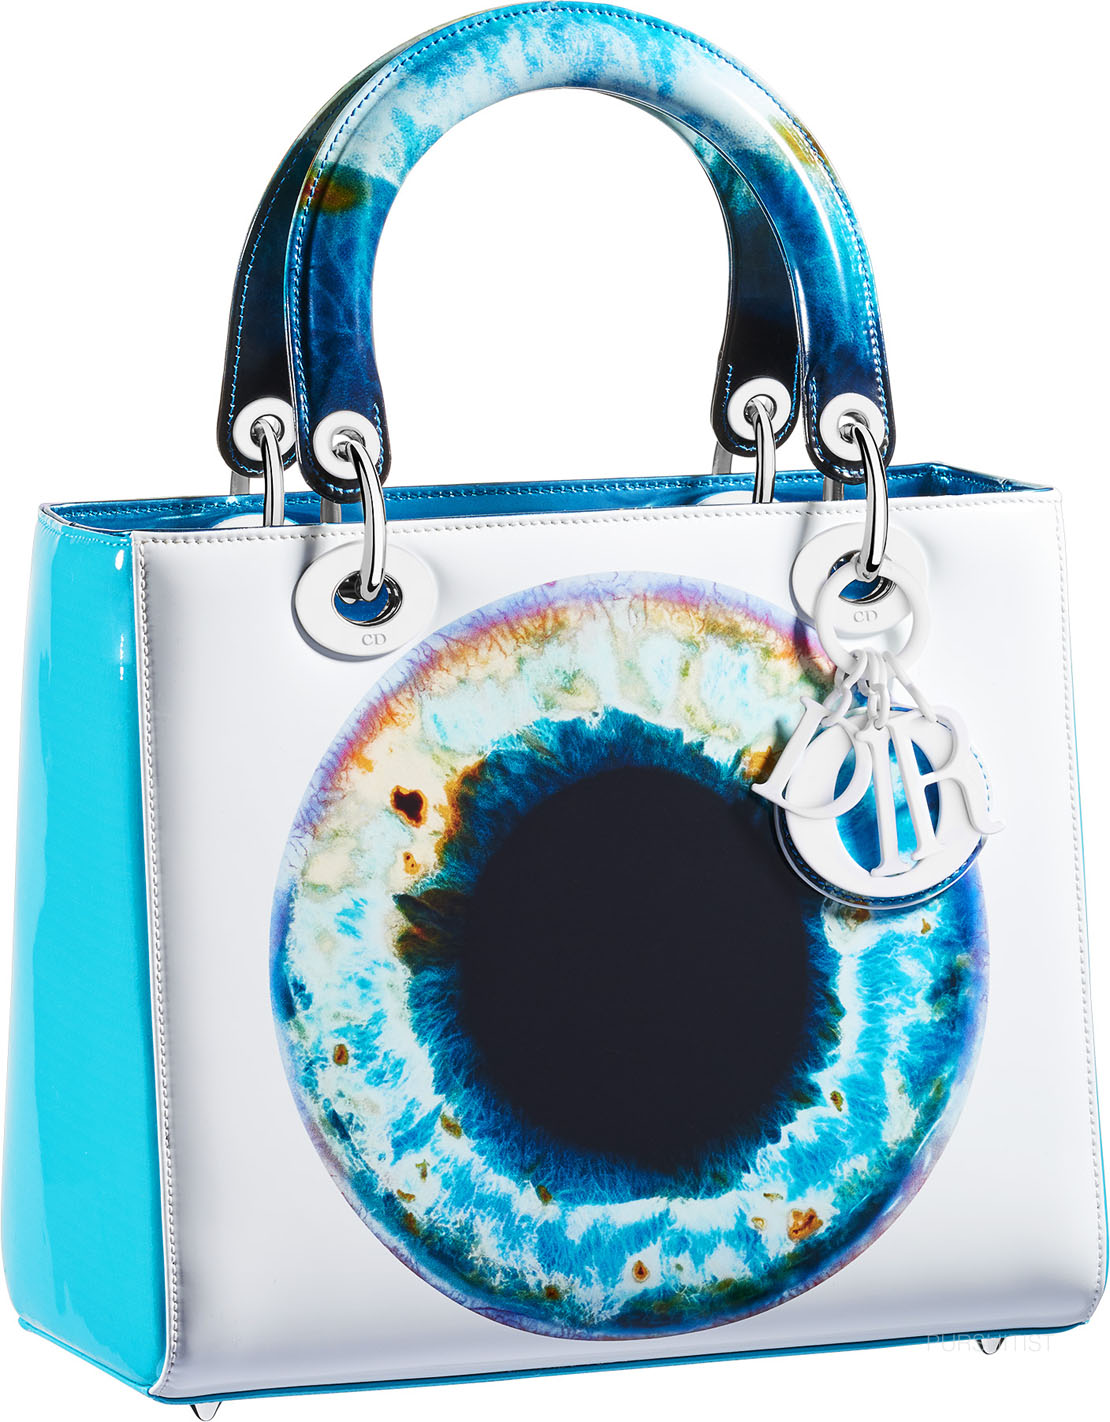 Marc Quinn Designs Lady Dior Handbags